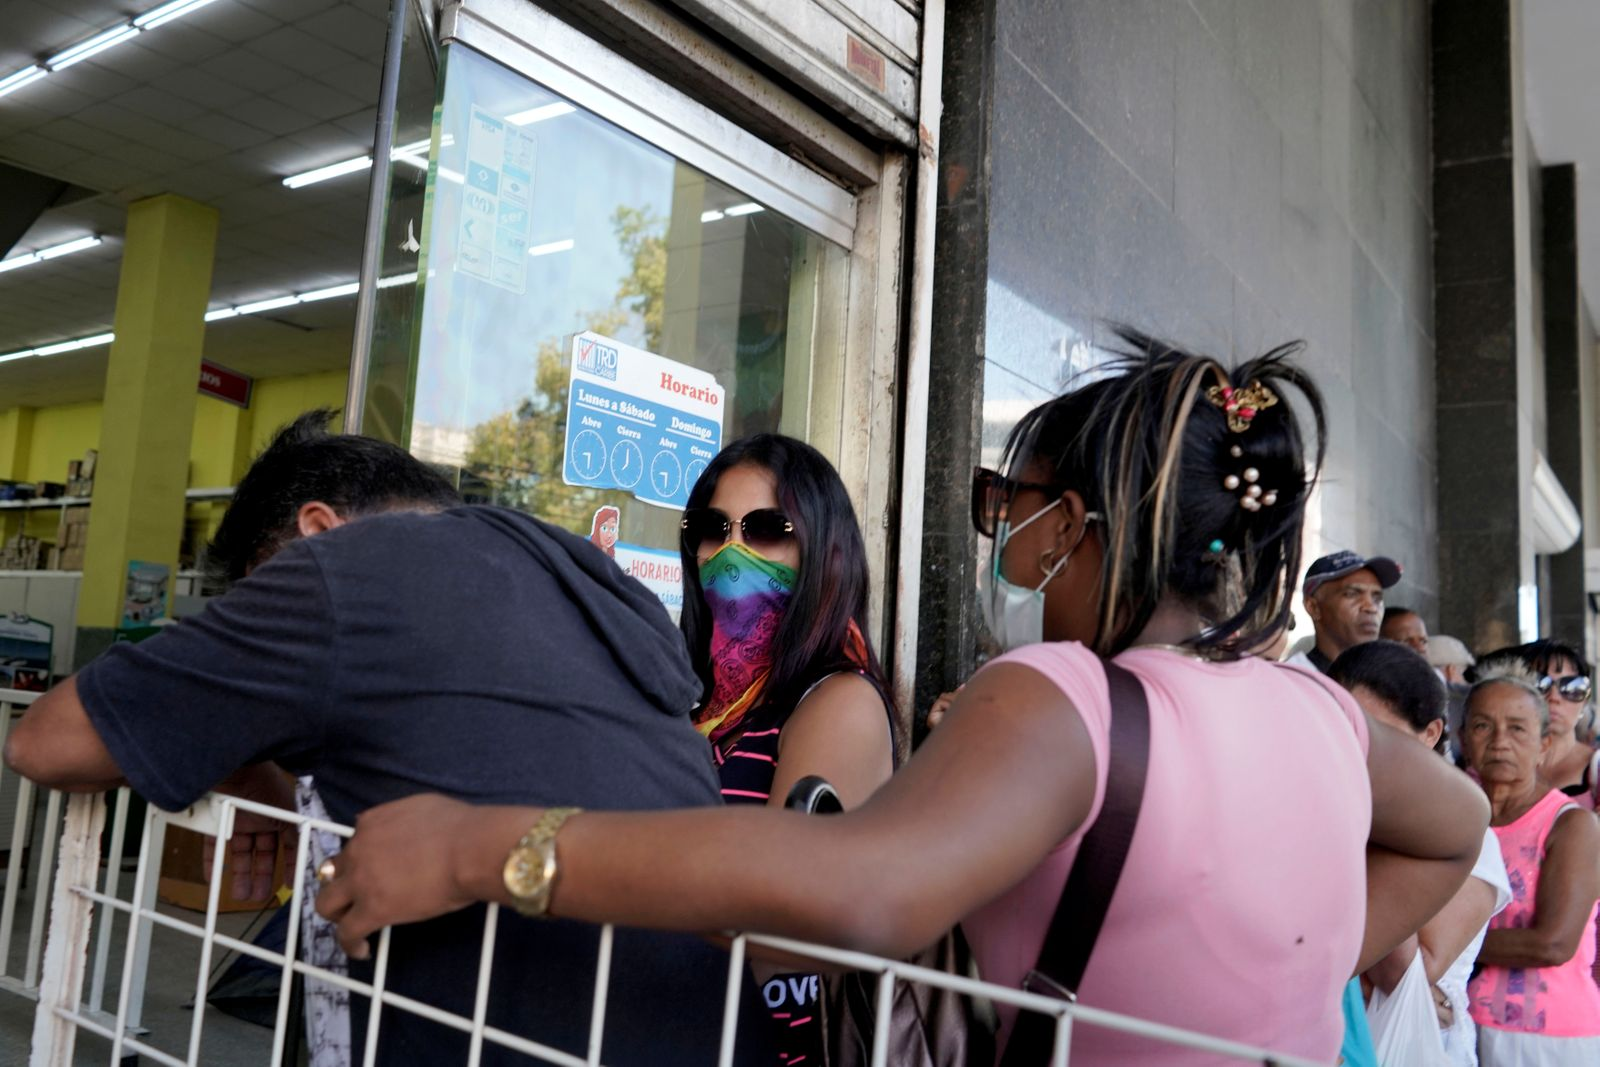 People wait in line to buy goods at a state store amid concerns about the spread of the coronavirus disease (COVID-19) outbreak, in Havana